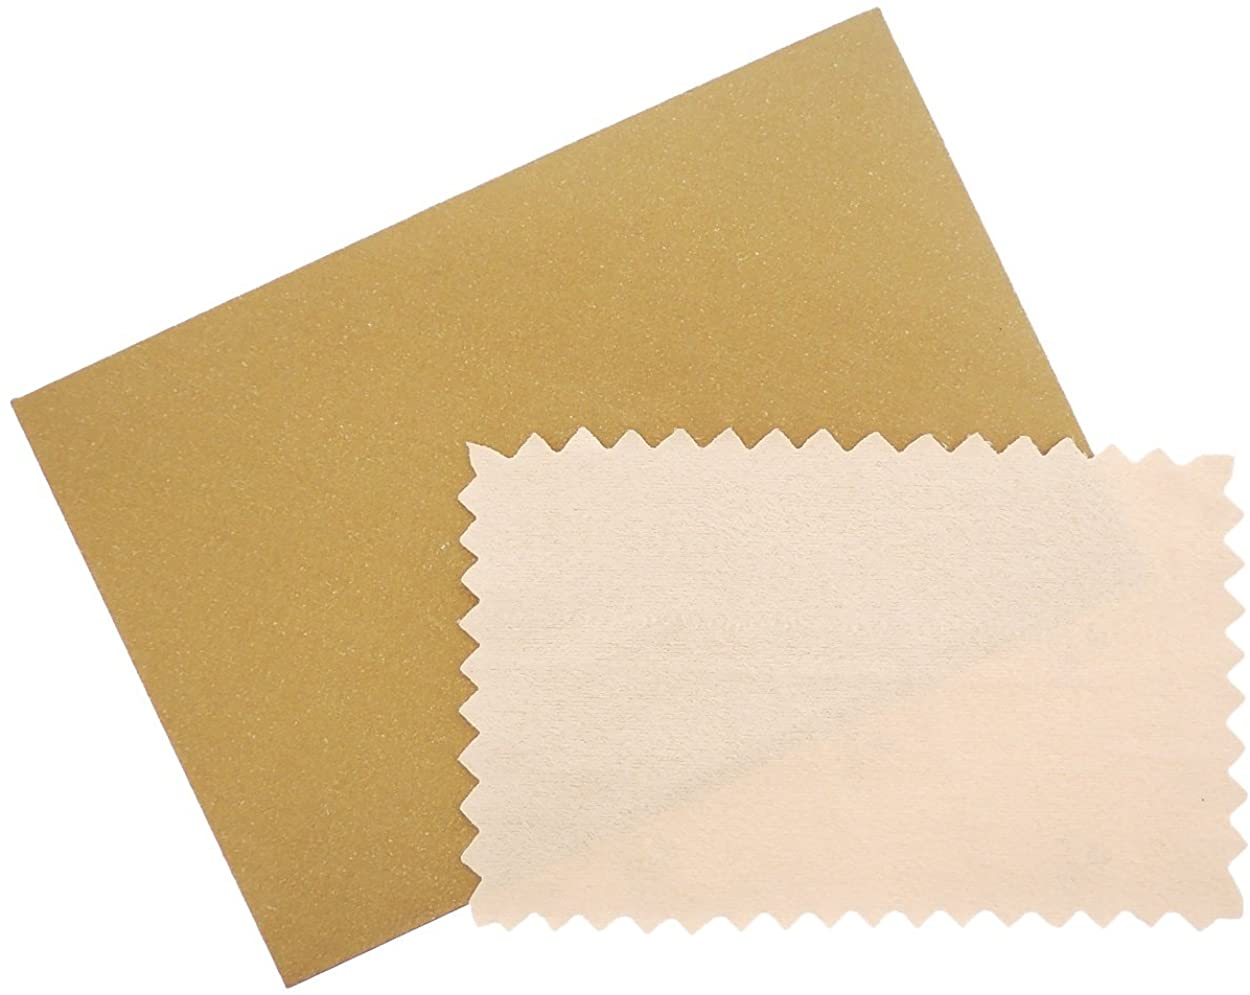 SOVATS Semi-Chamois Polishing Cloth for Silver Gold Brass & Most Other Metals, 3.5x2.5, Card Size